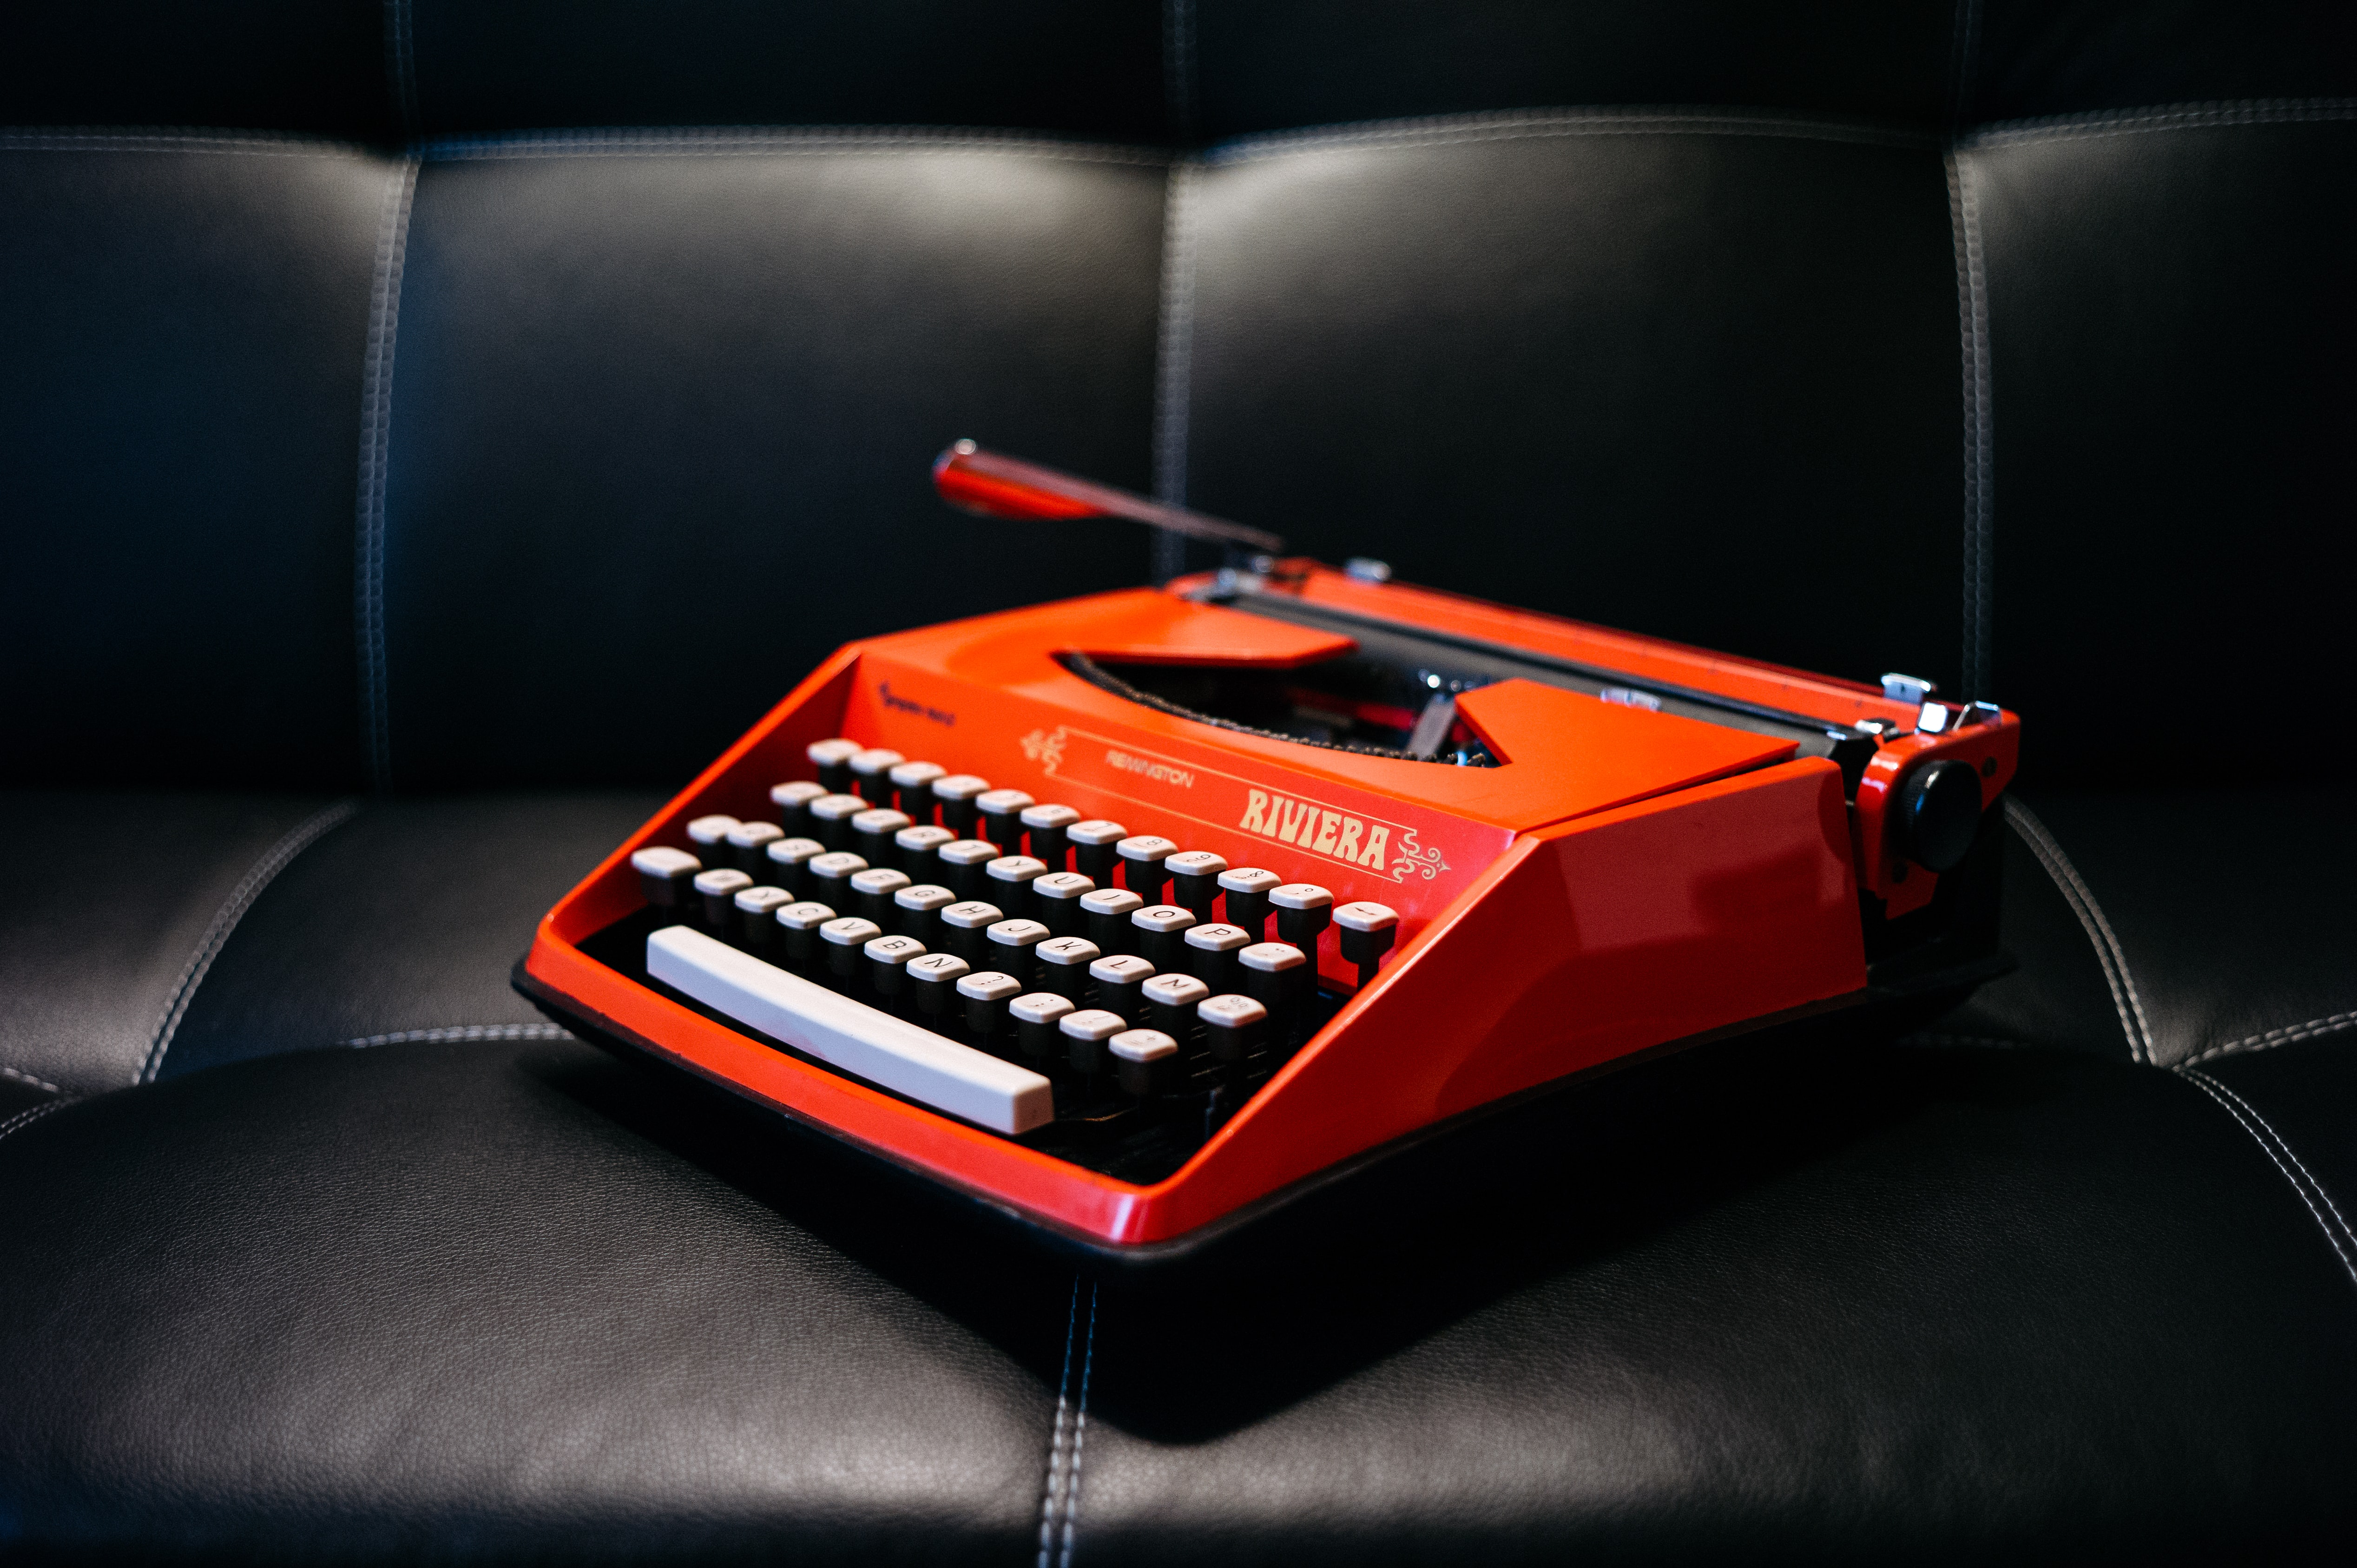 A red Riviera typewriter on a black leather couch